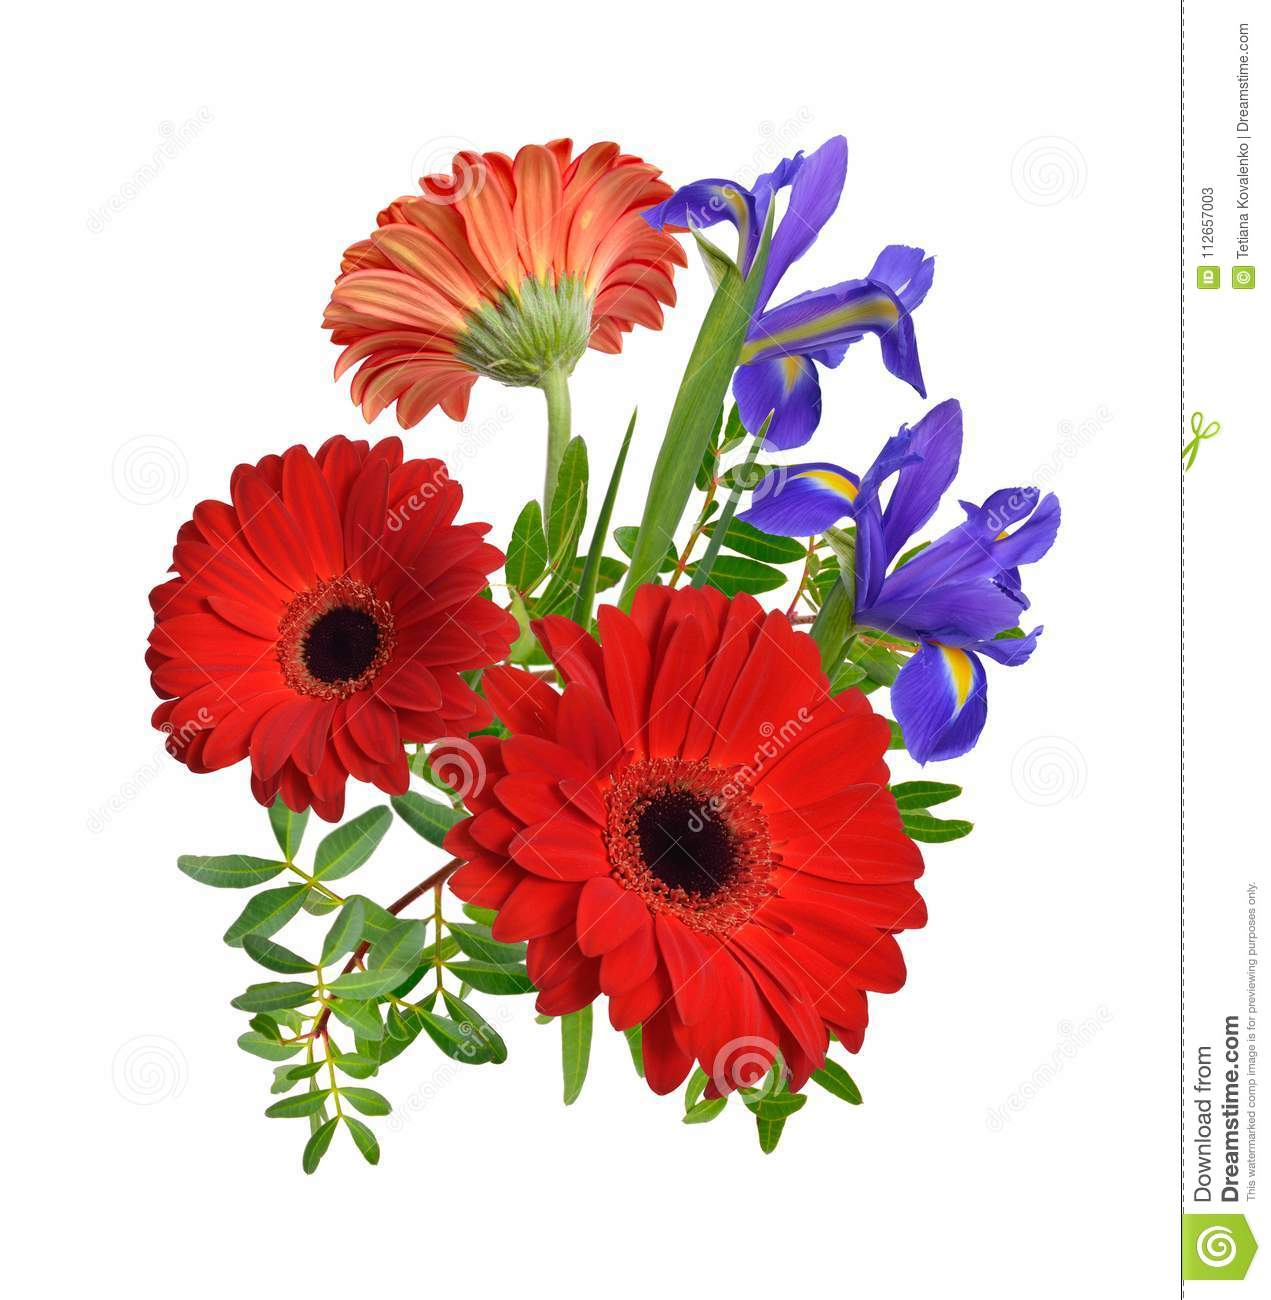 Composition With Red Gerbera And Iris Flowers. Isolated. Stock Image ...